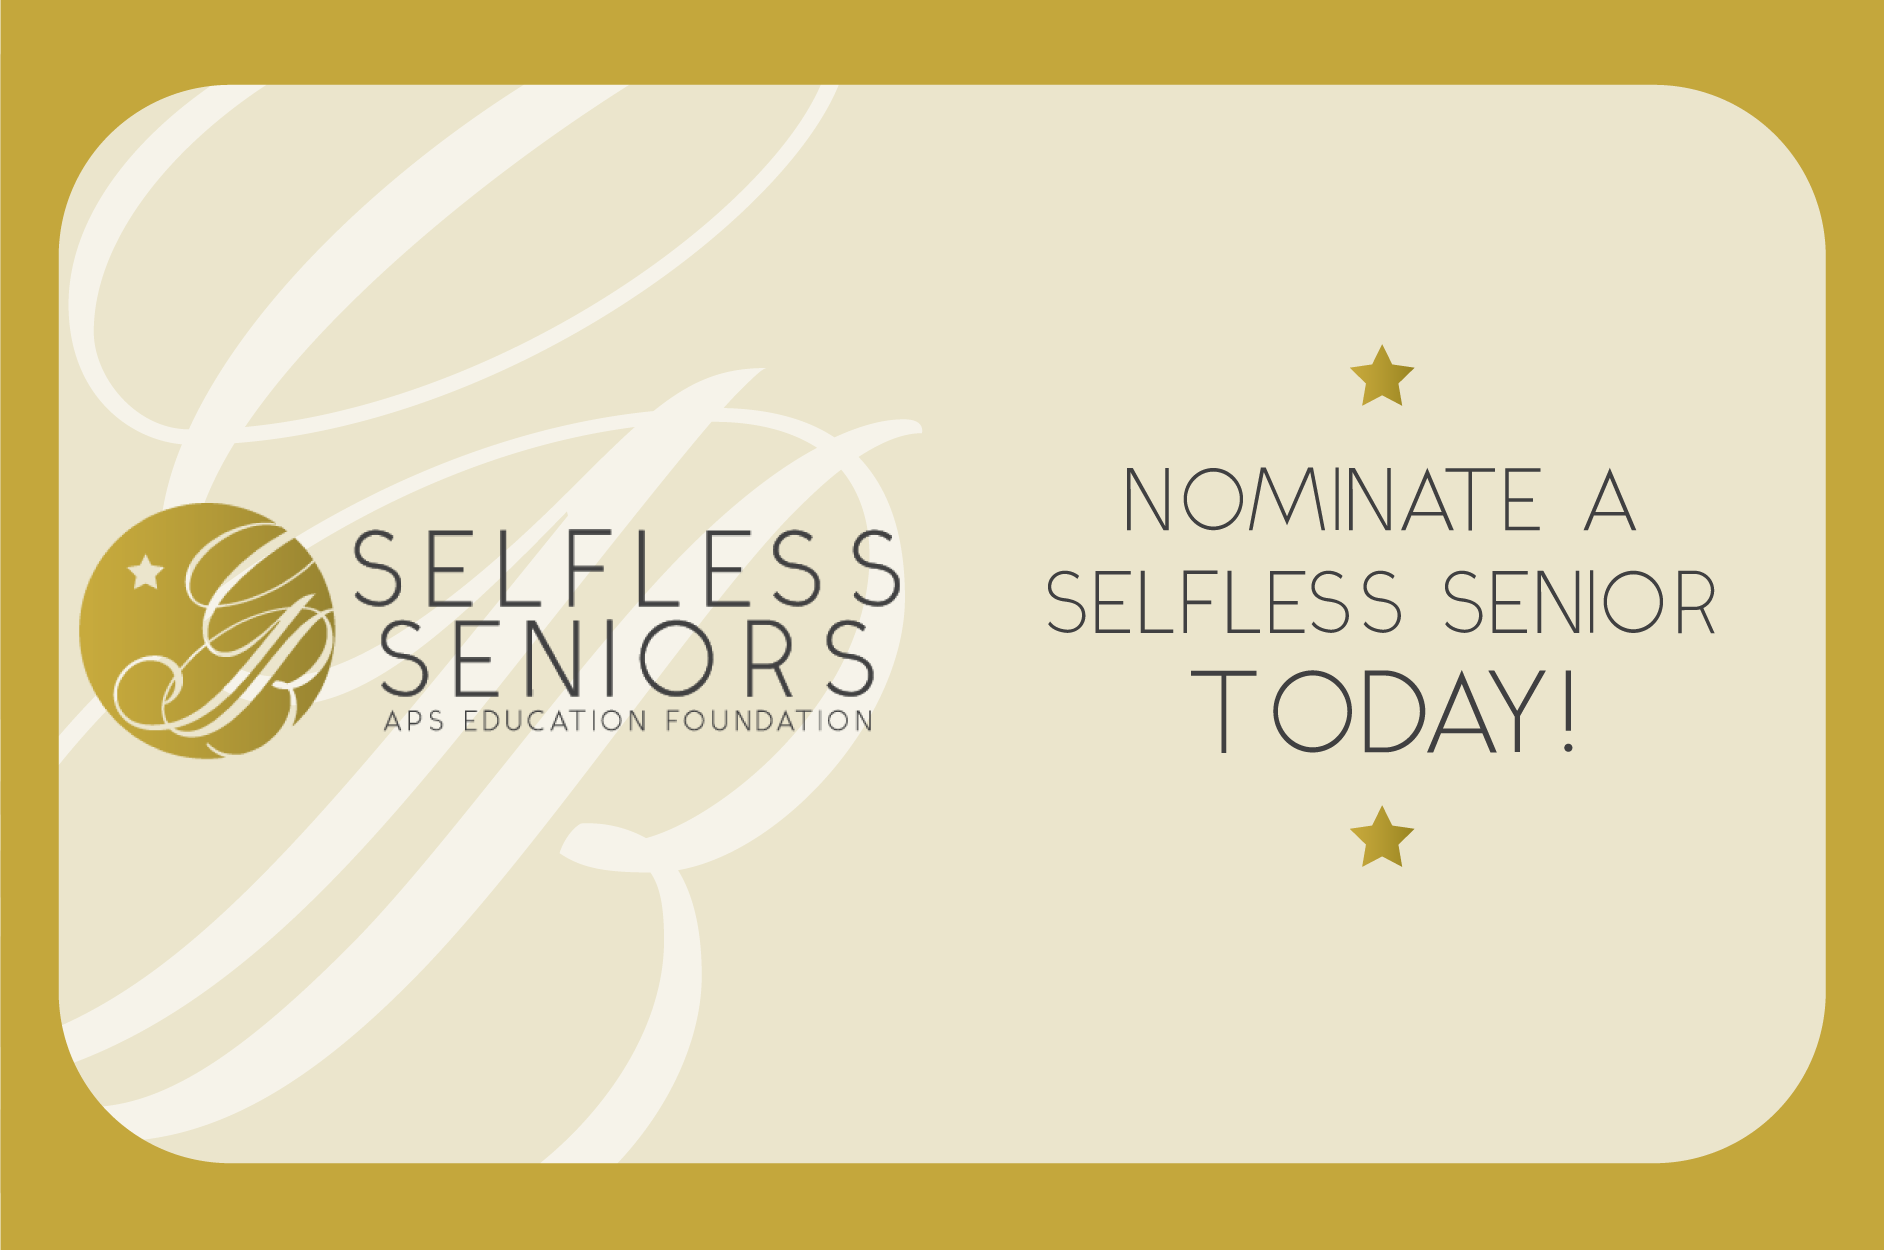 Nominate a Selfless Senior today!